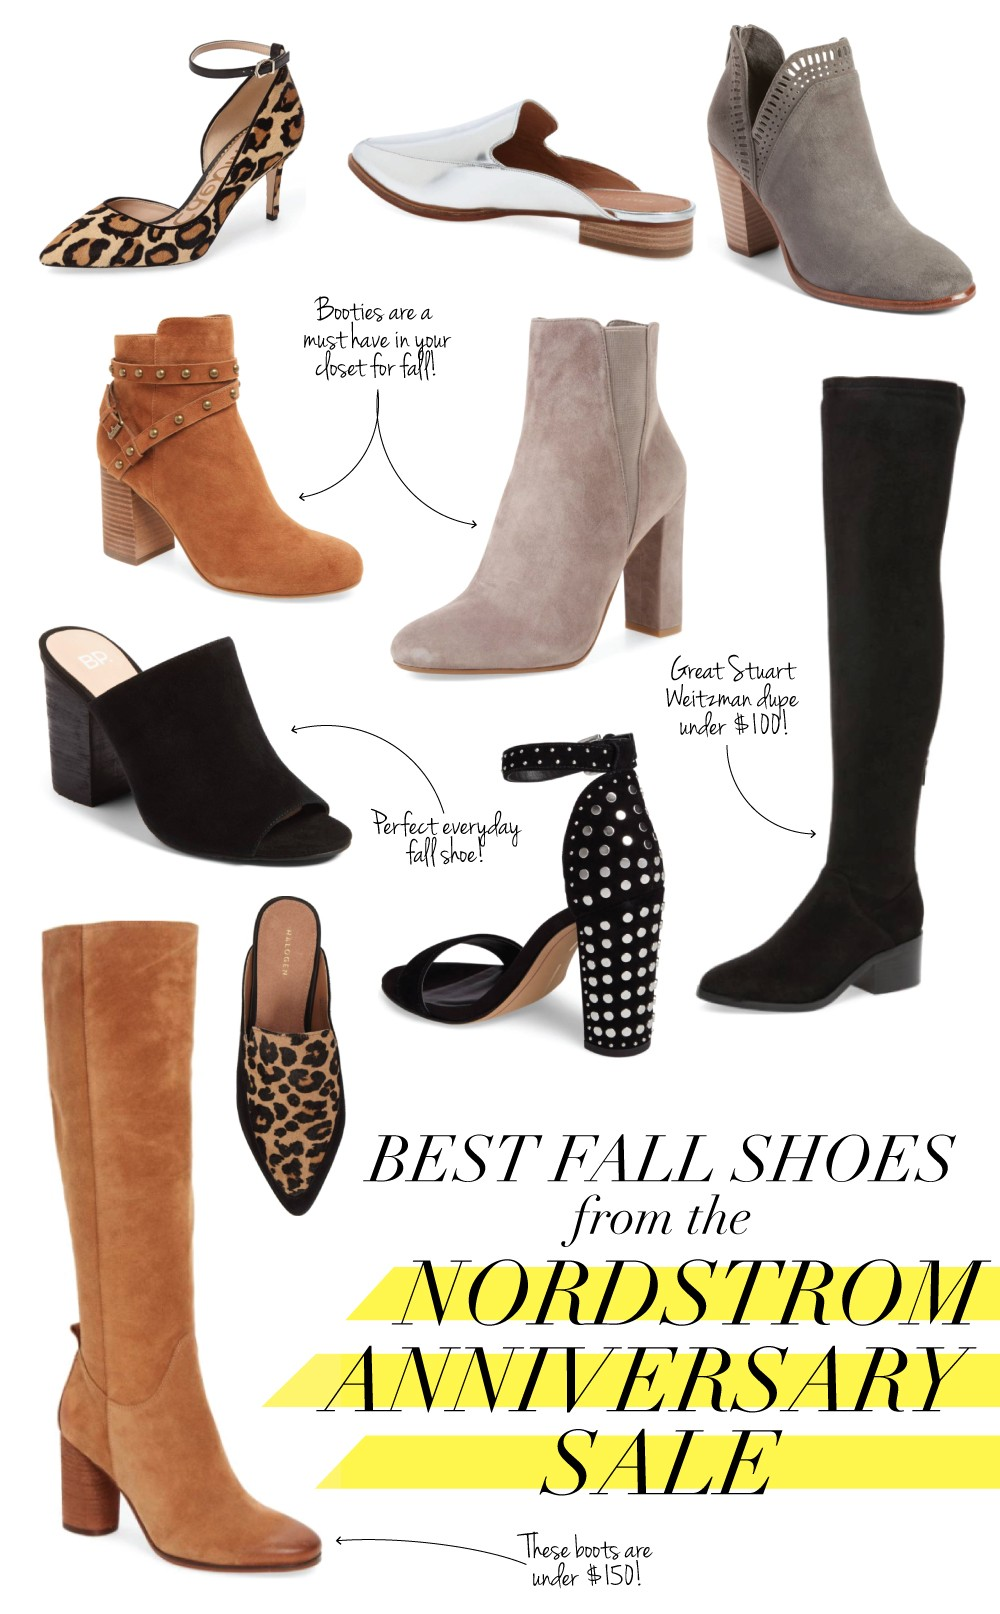 favroite fall shoes from nordstrom anniversary sale, stuart weitzman over the knee boots dupe, steve madden boots, vince camuto booties, sam edelman leopard print heels